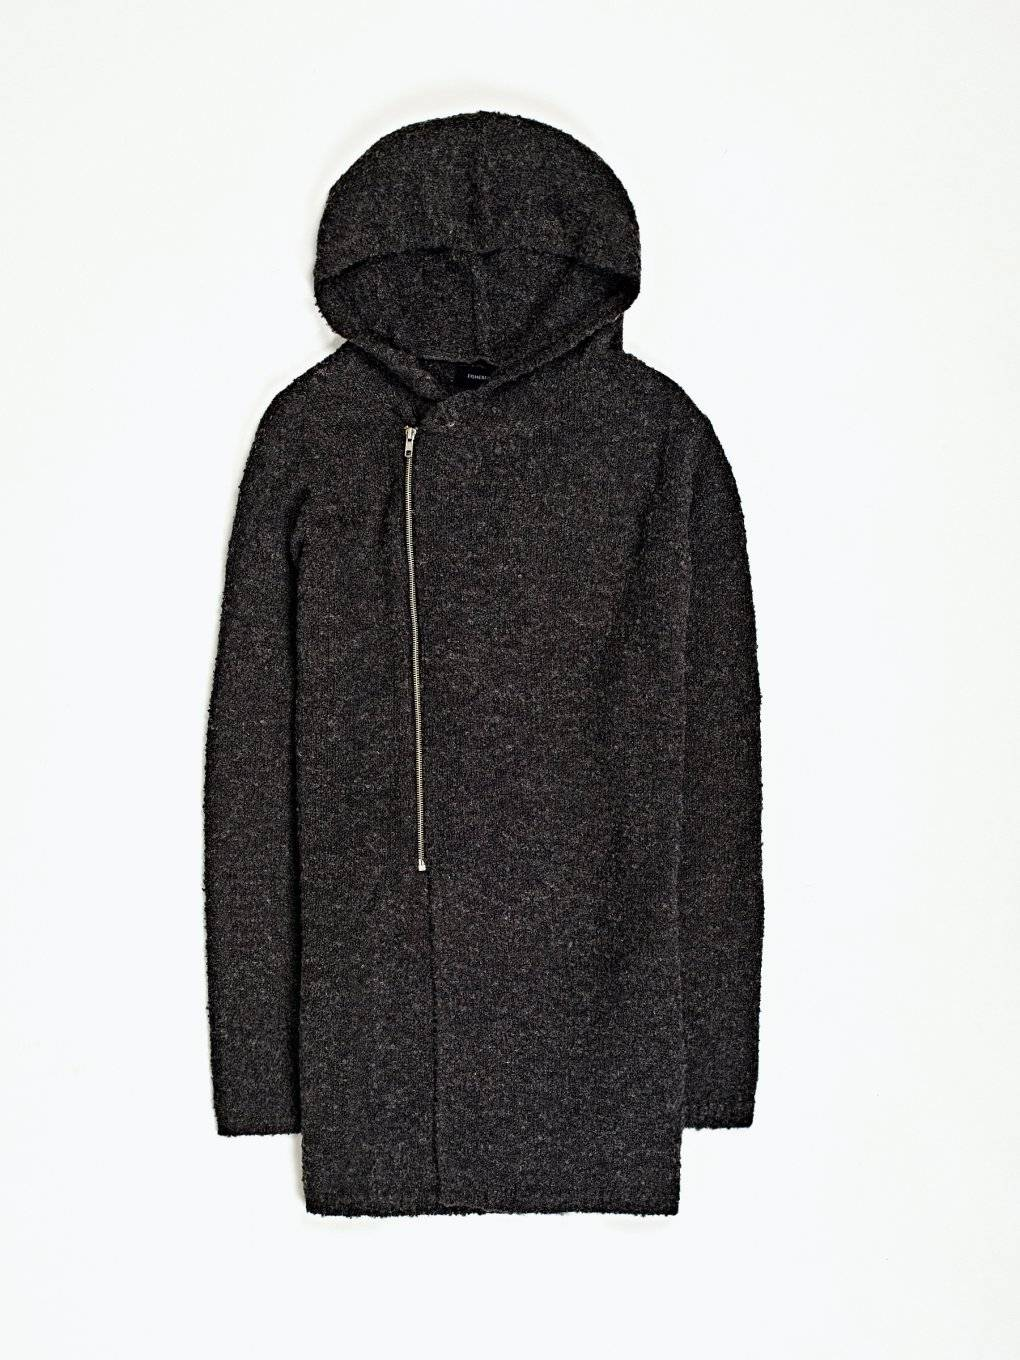 Zip-up hooded cardigan